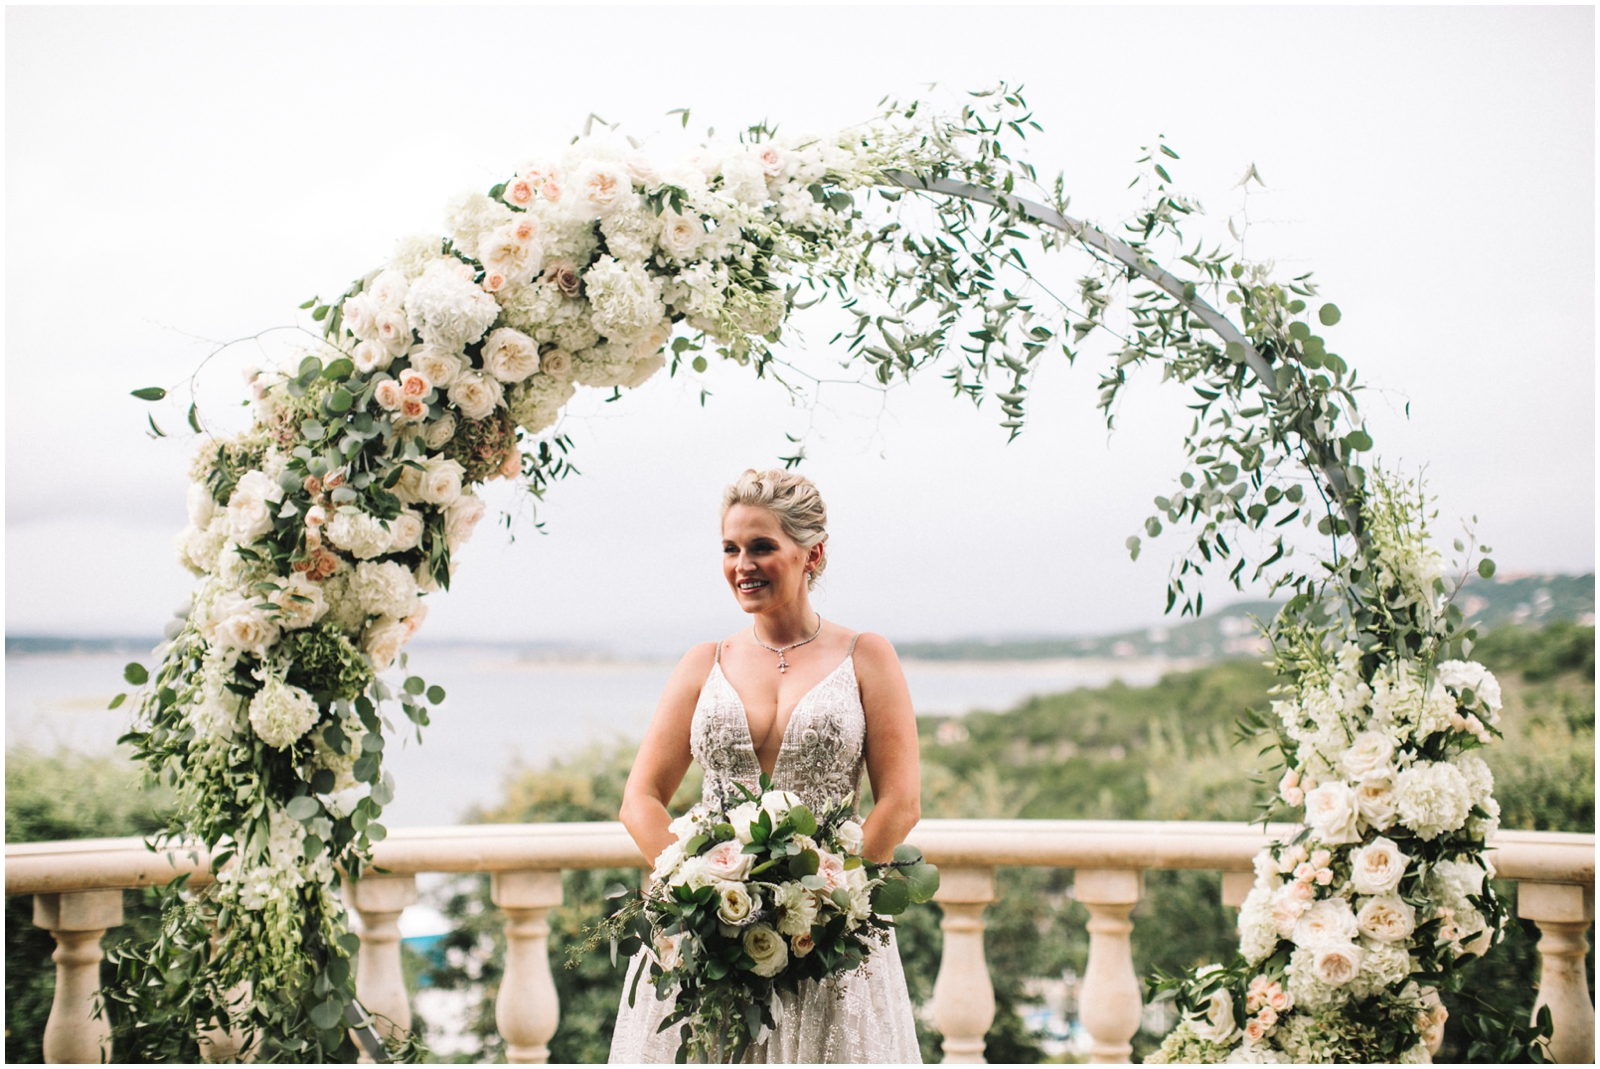 Stunning white floral wedding arch